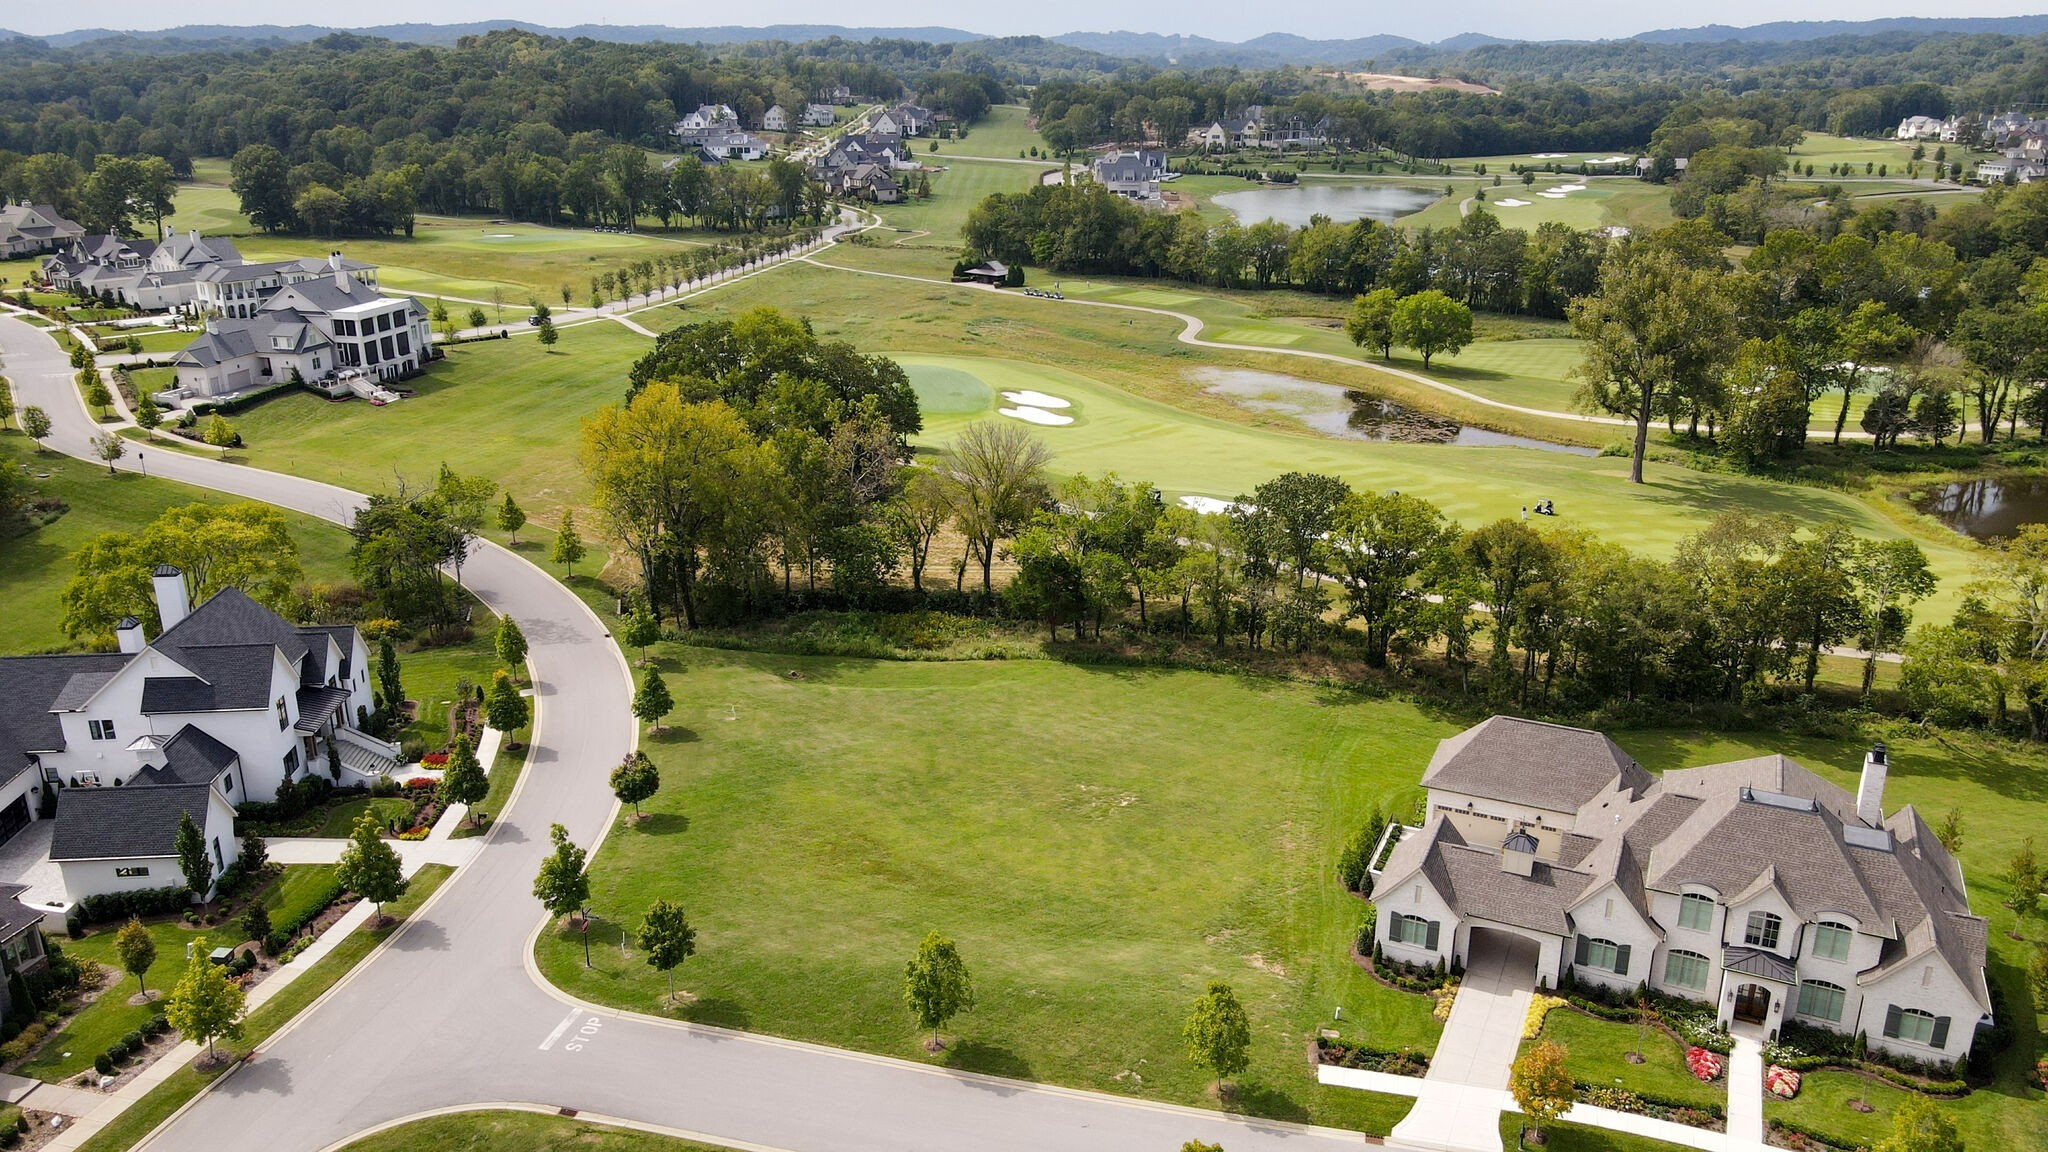 A one-of-a-kind golf course homesite overlooking a creek, the 10th fairway and green along with the 13th green of our Greg Norman Signature golf course! This homesite is .66 acre and is perfect for a lower level walk out basement home and is tucked into one of our few fully-developed neighborhoods, so there will be minimal construction around this home in the future.  If you are a golfer, there are few better homesites than this one at The Grove!